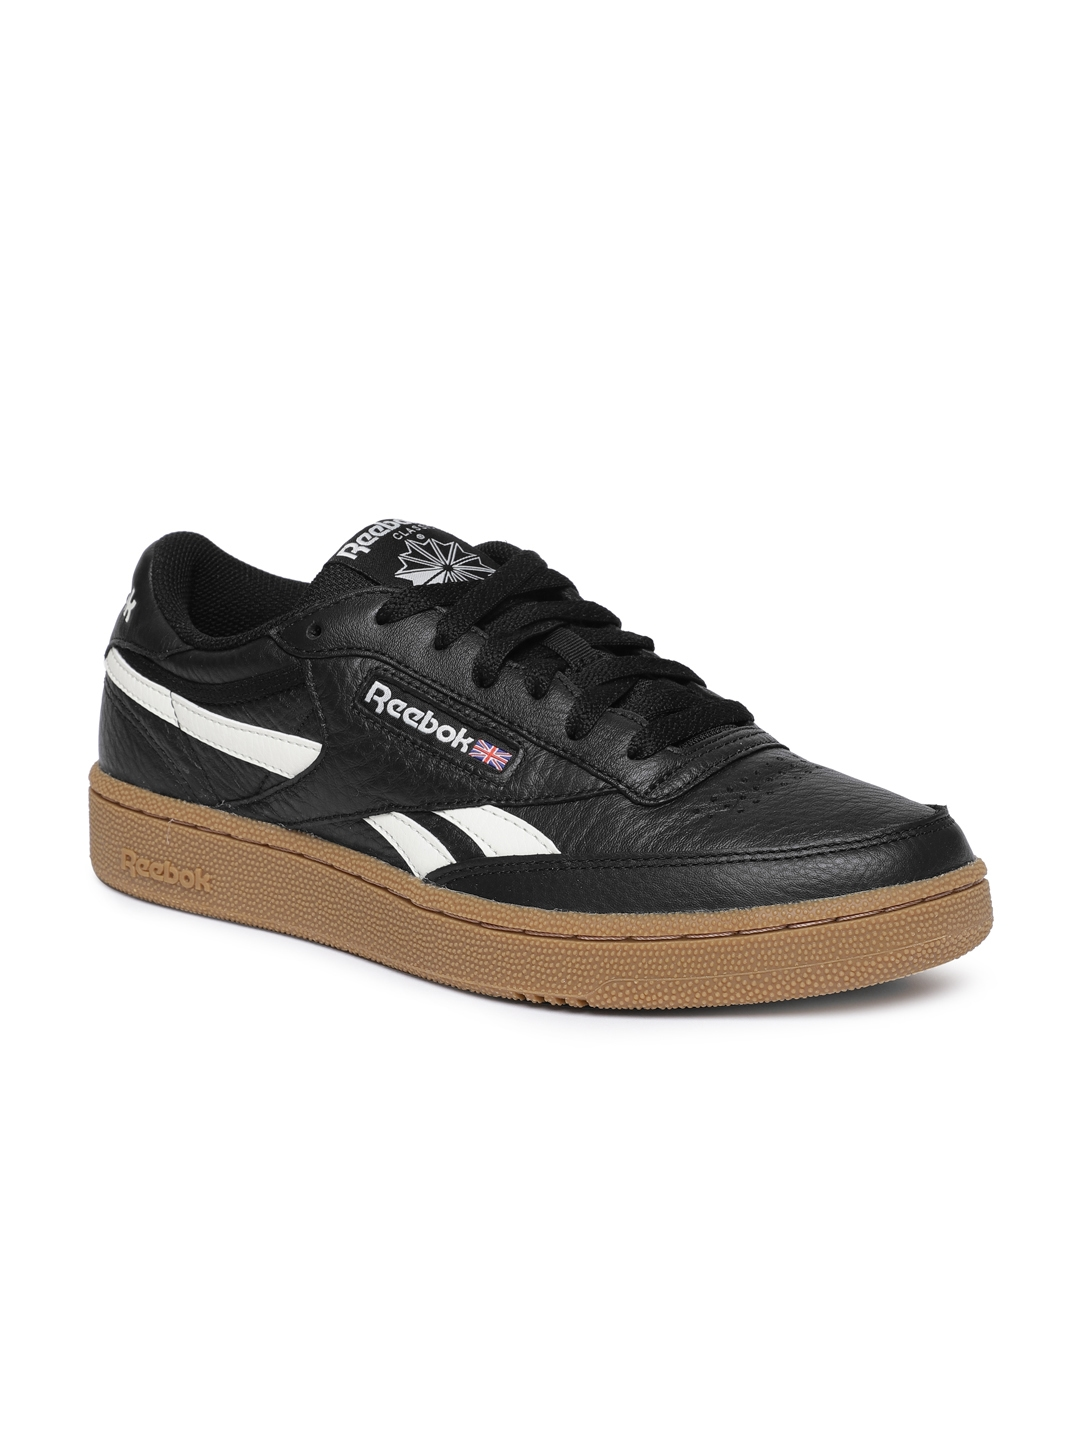 de2f9571aa4c Reebok Classic Men Black Training or Gym Shoes. Rs. 7999Additional ...